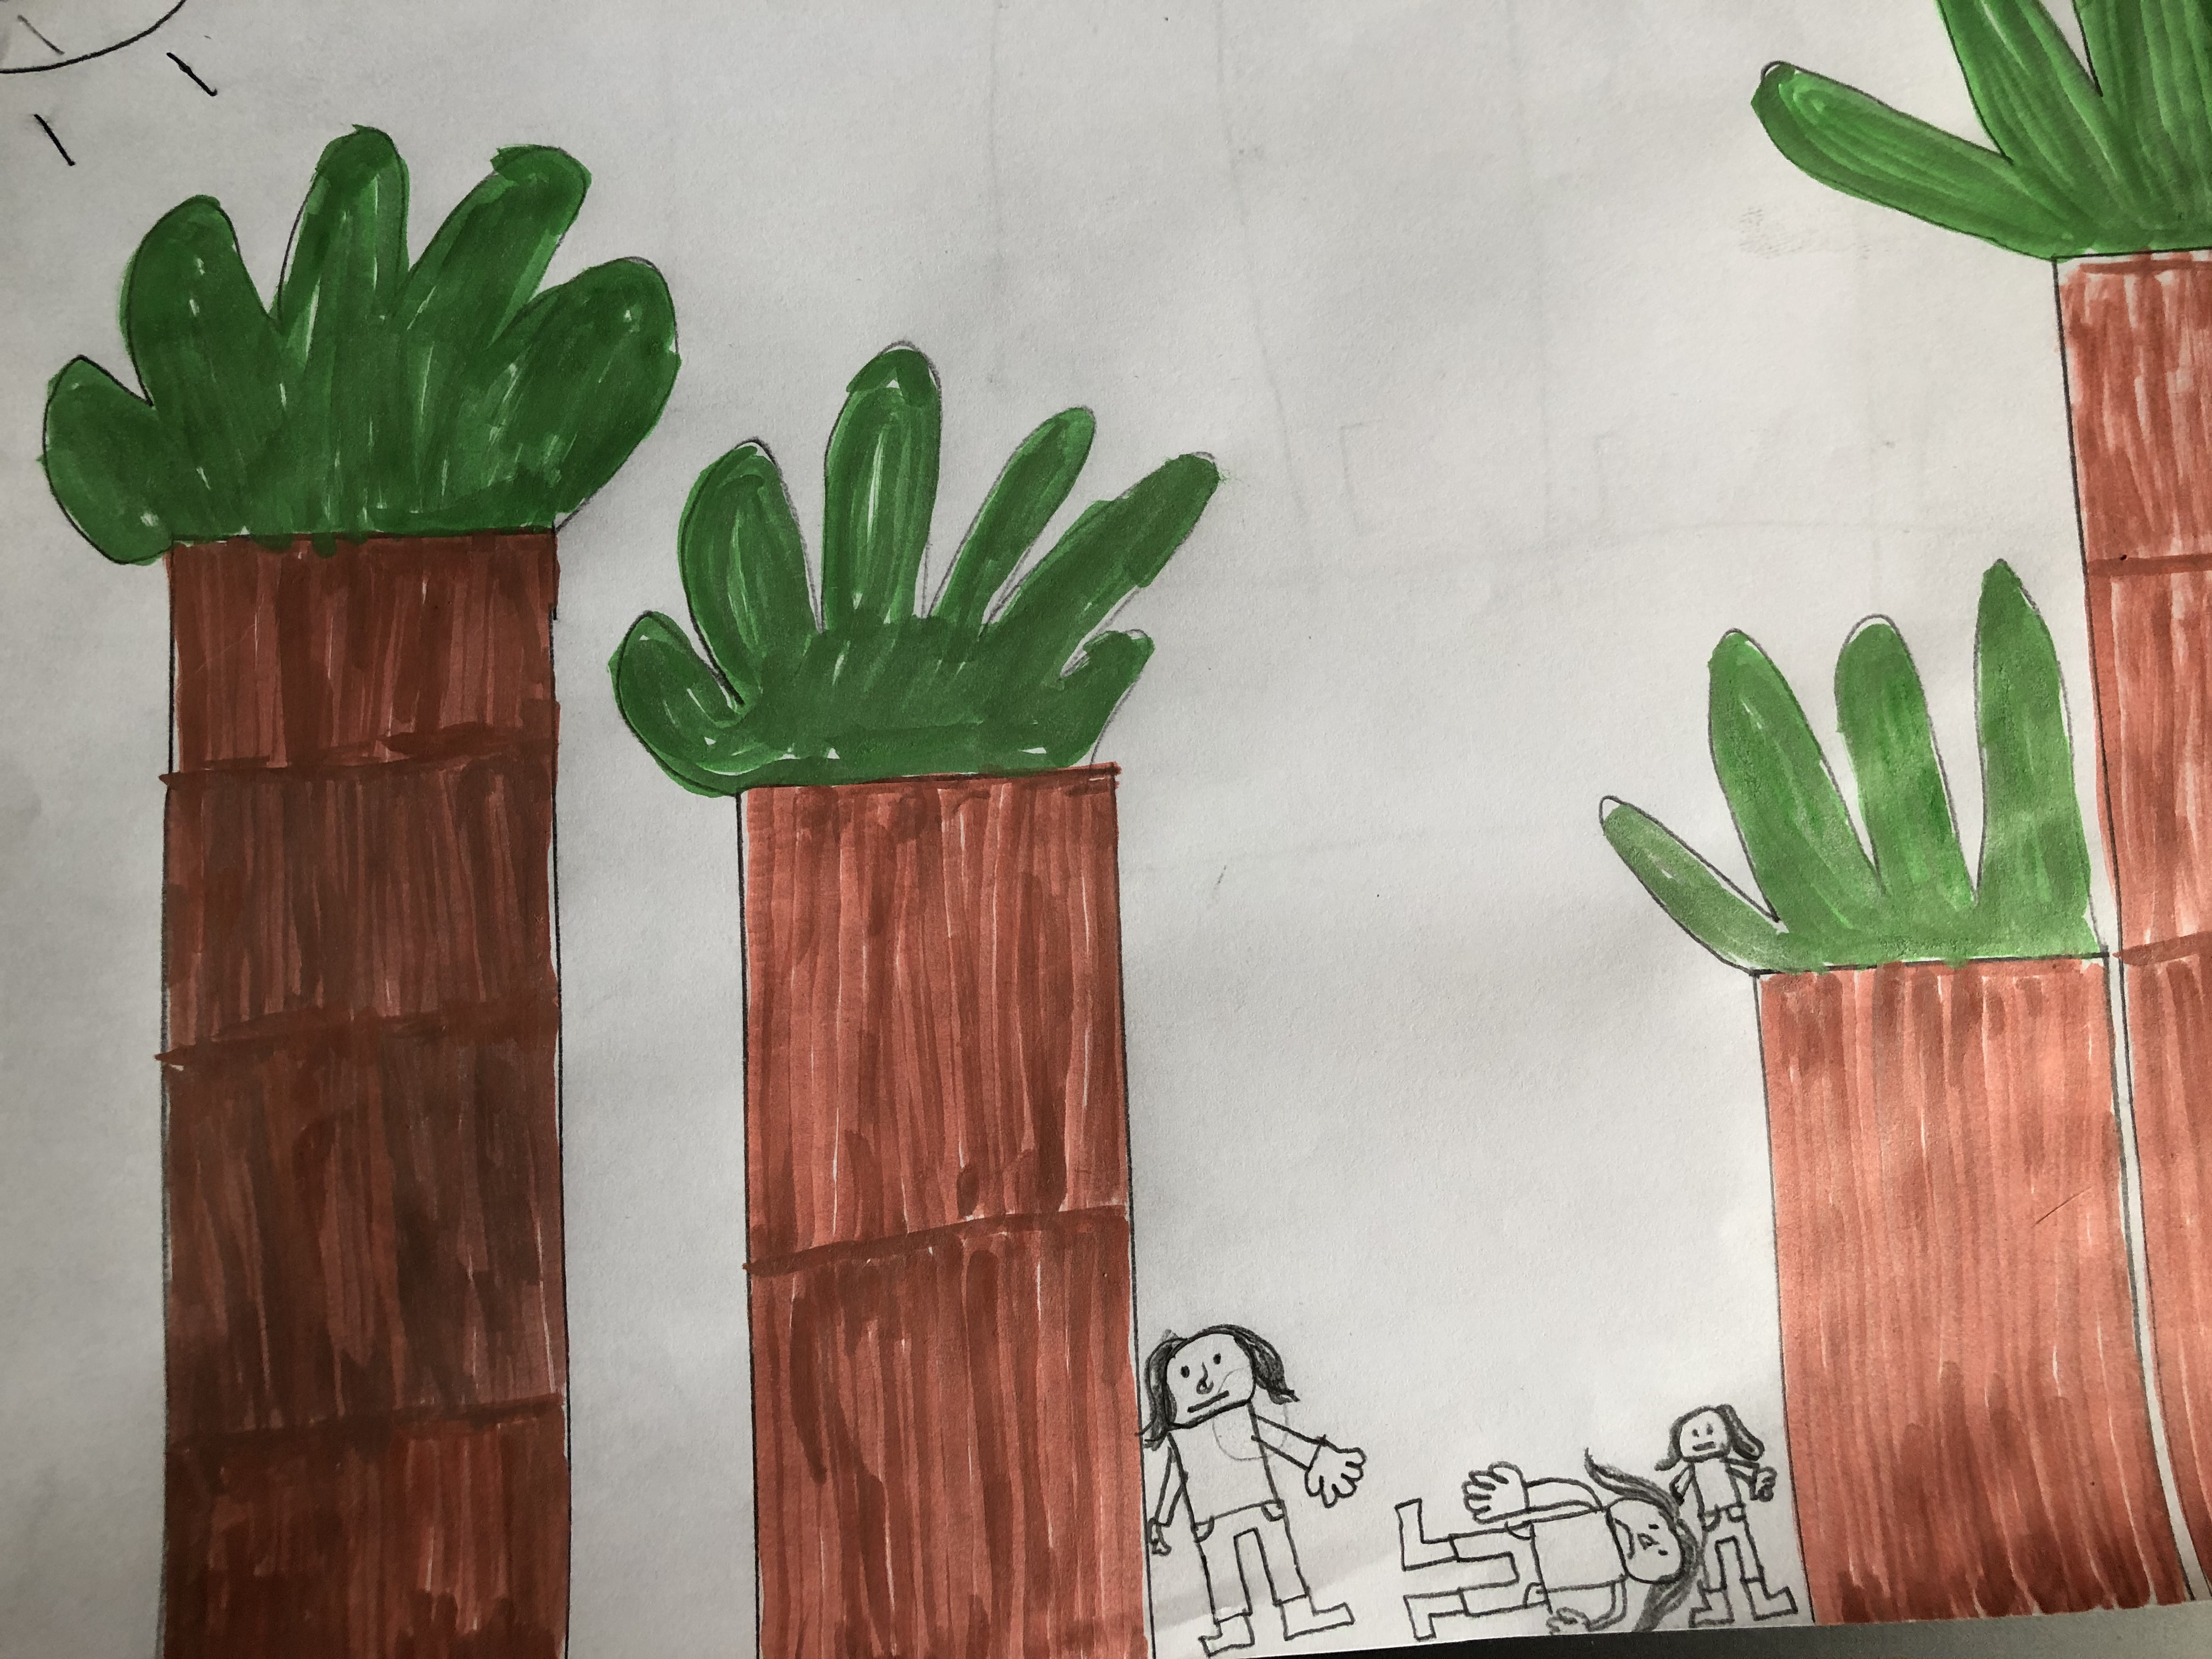 Drawing of trees and someone fainting in the middle